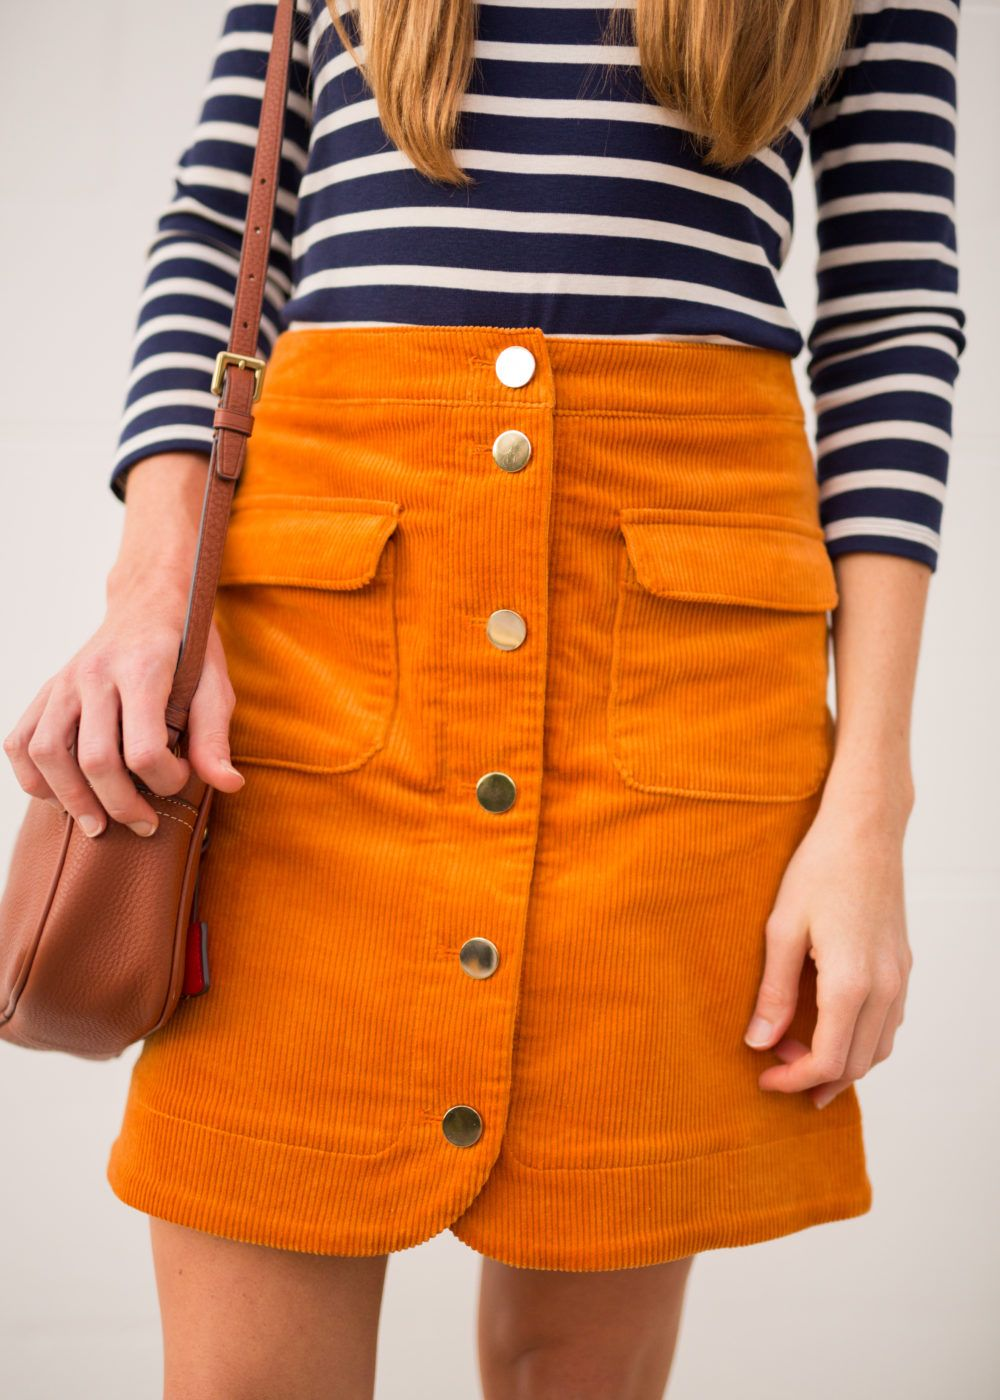 f0eef7d127 4 Must Have Fall Staples to Add to Your Wardrobe | Sunshine Style